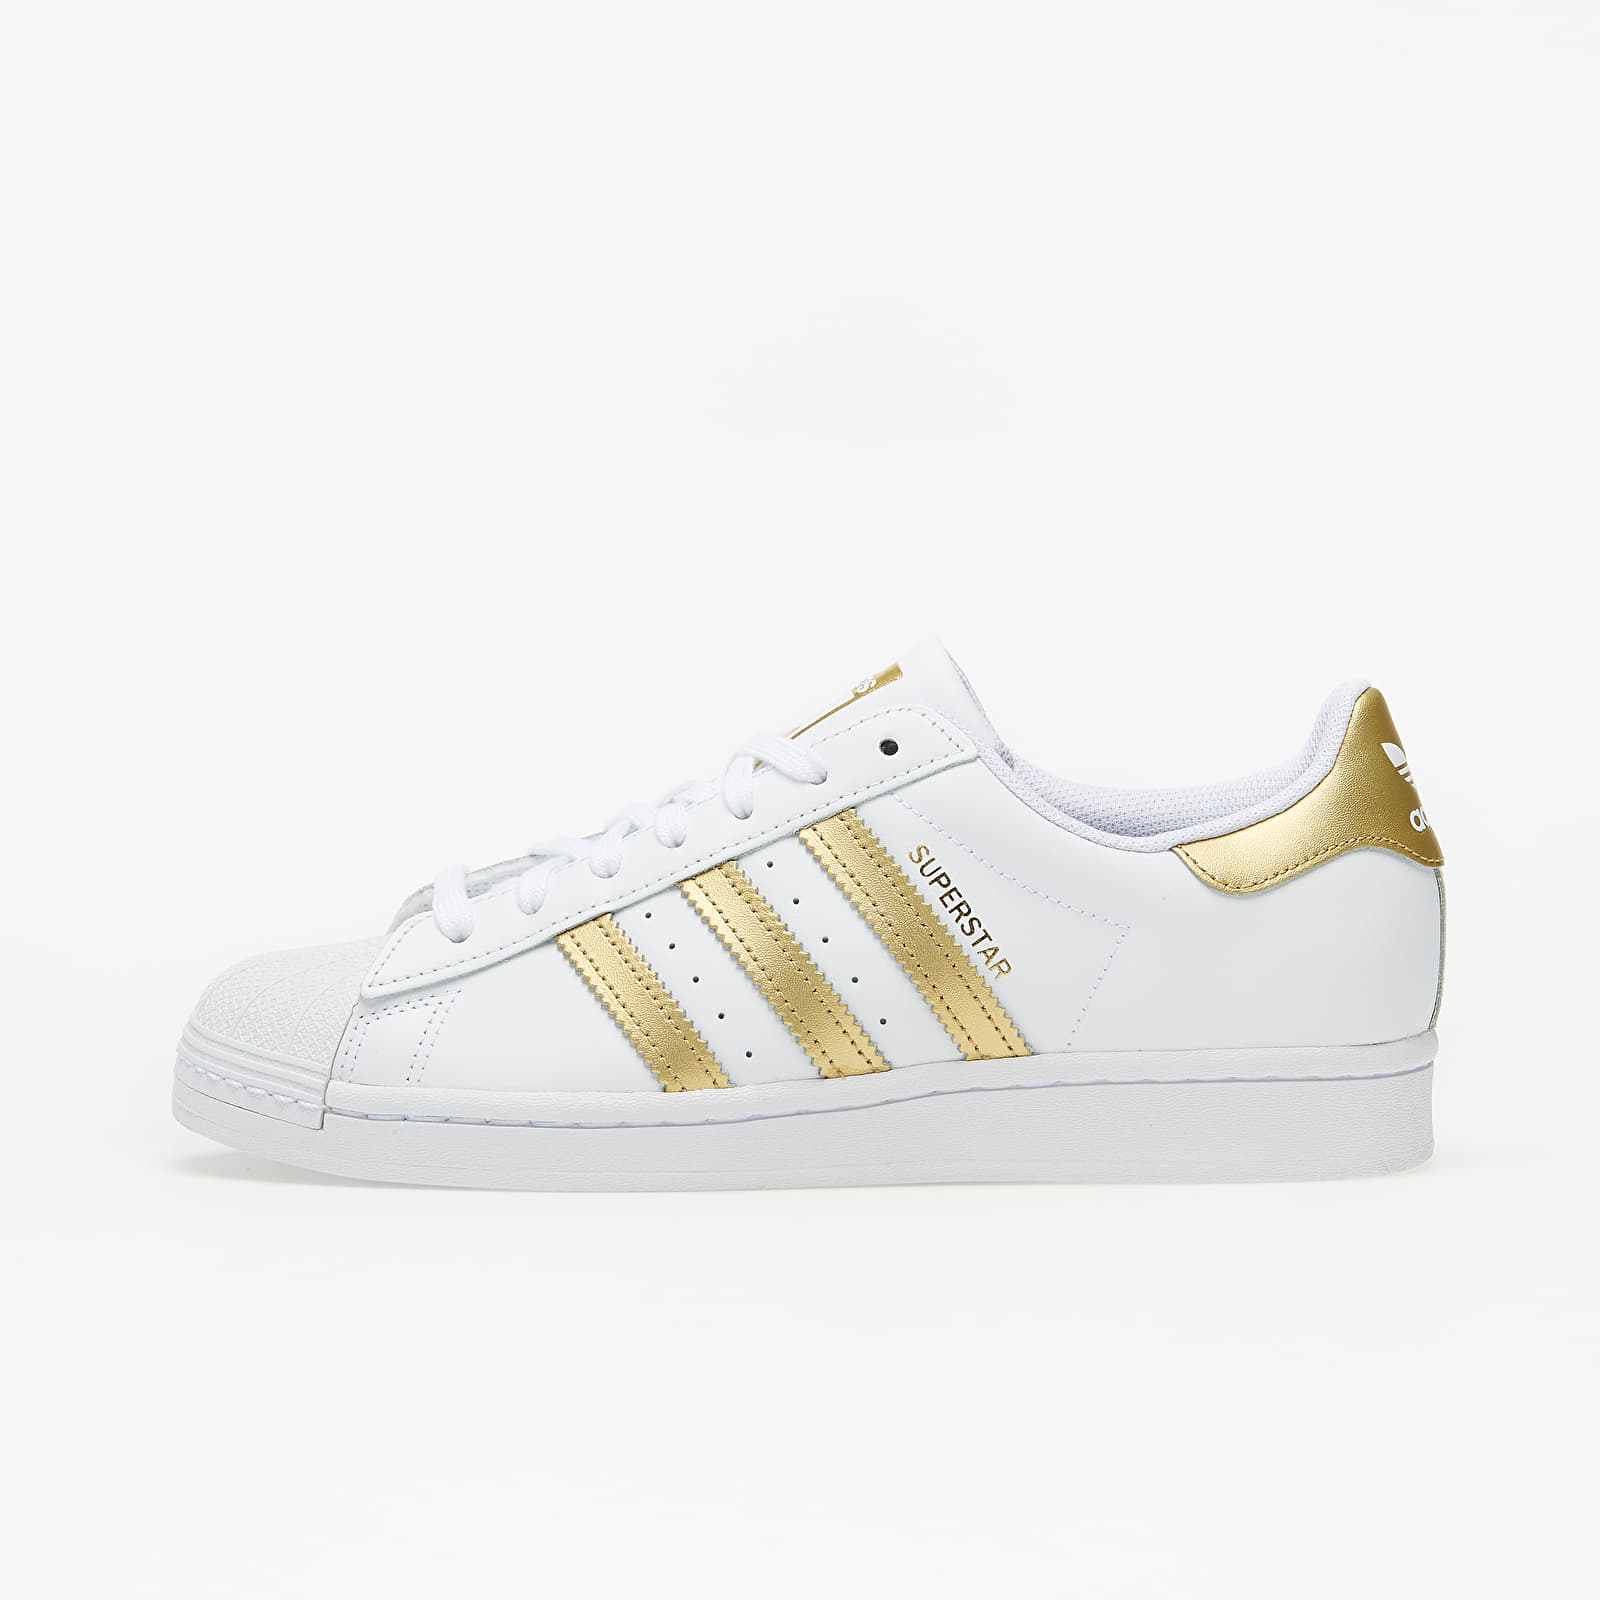 adidas Superstar W Ftw White/ Gold Metalic/ Ftw White EUR 38